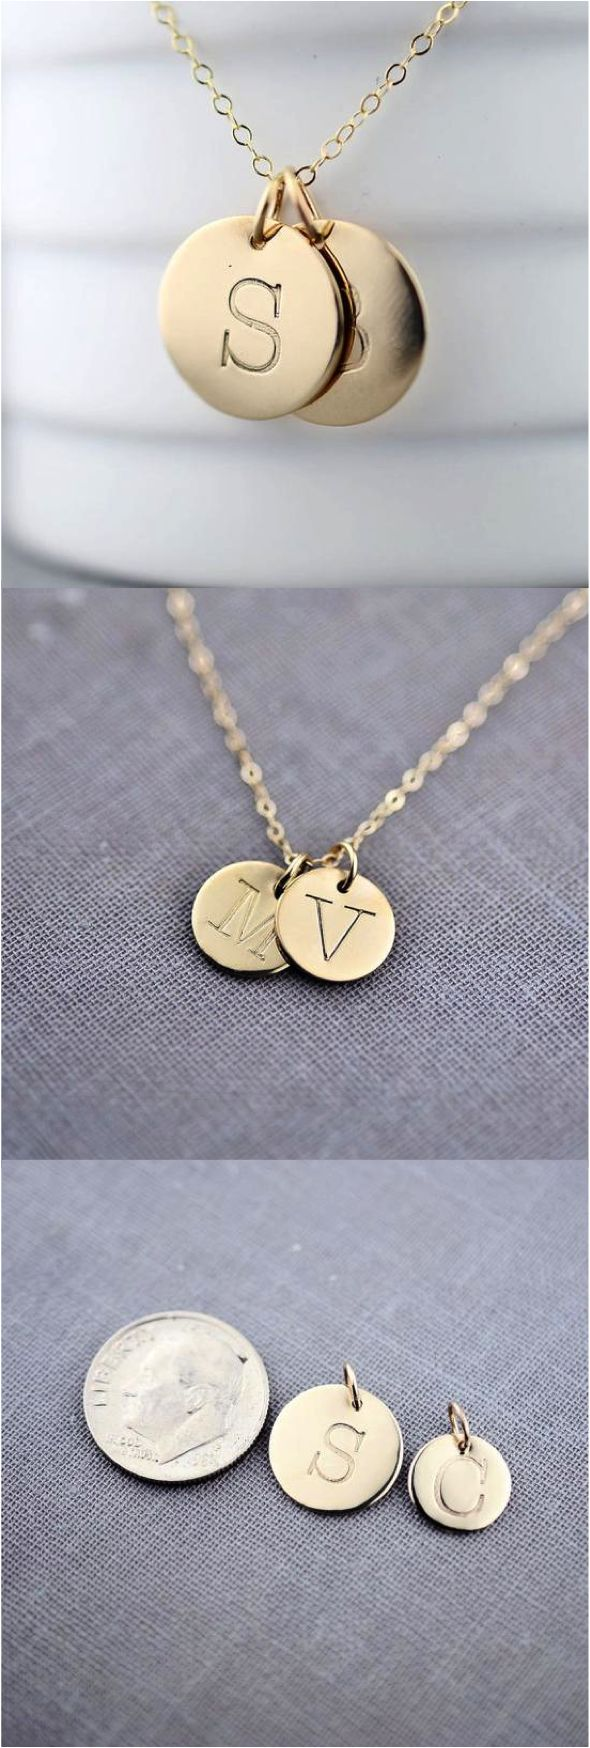 Personalized Twin Solid 14K Gold Initial Necklace by LilyEmmeJewelry. Wear your favorite letter on a recycled solid 14K gold pendant. You may choose any capital letter from typewriter font. Every pendant is hand-stamped and made-to-order | Hatch.co